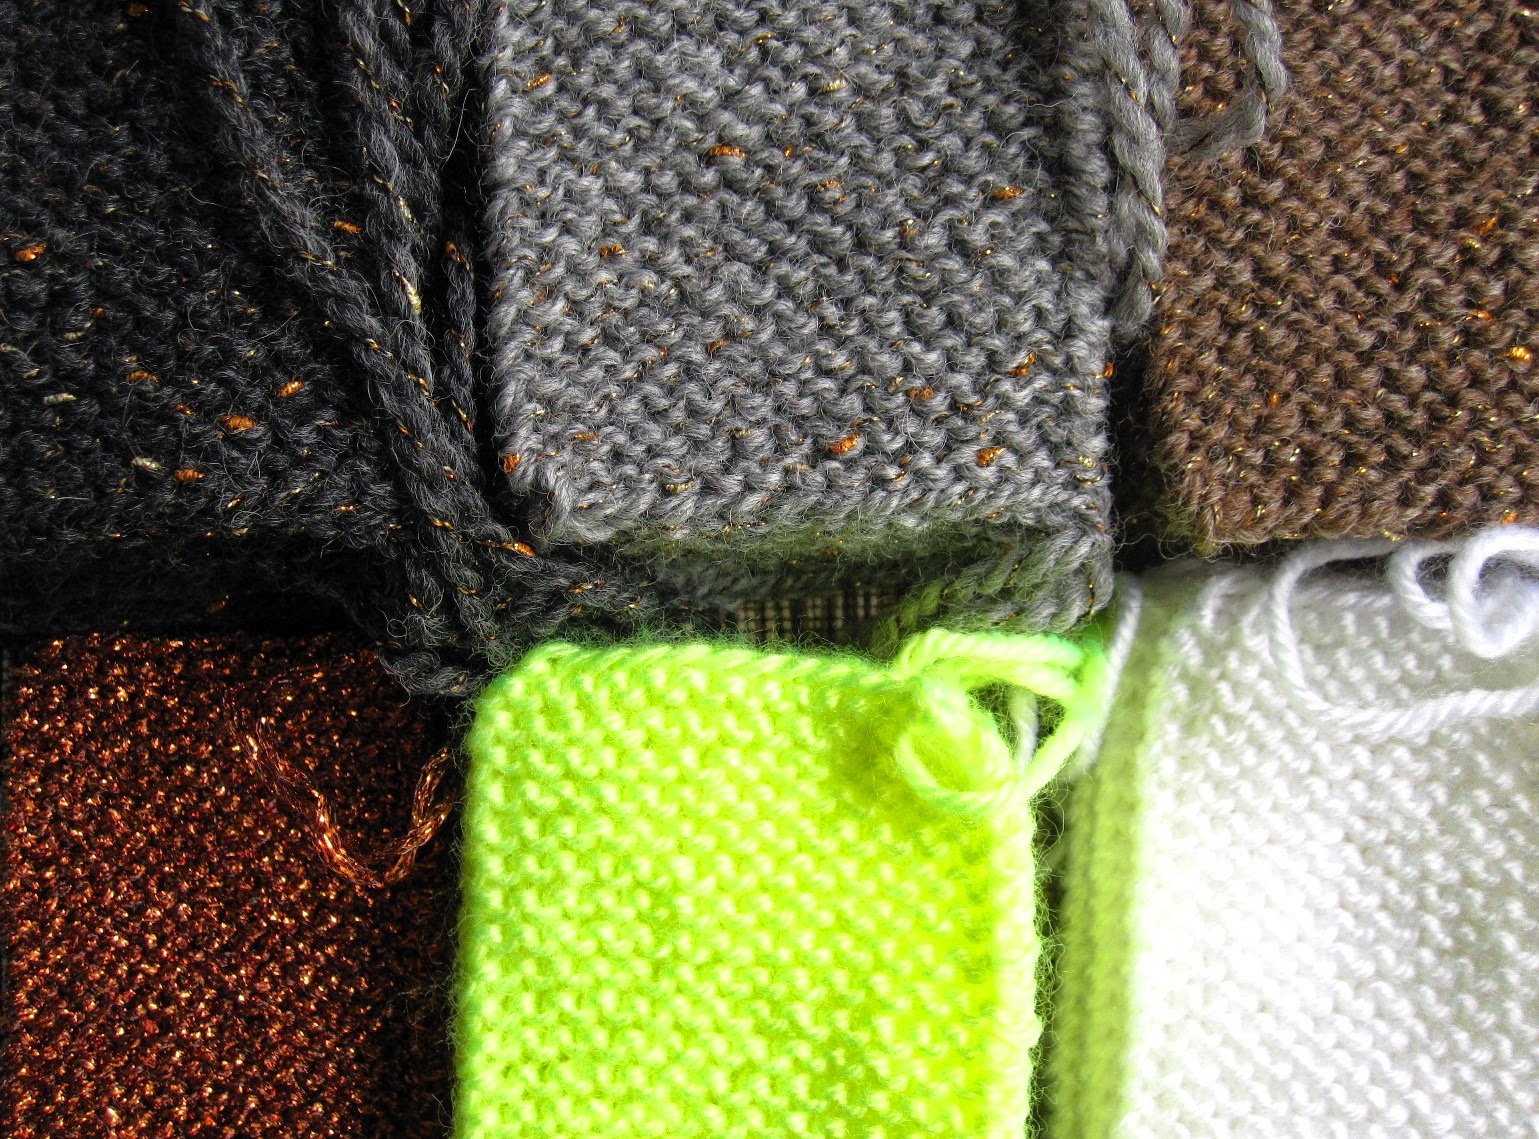 Rows of garter-stitch knitted rectangles in earth colours with shots of gold, and in bright white and neon yellow.